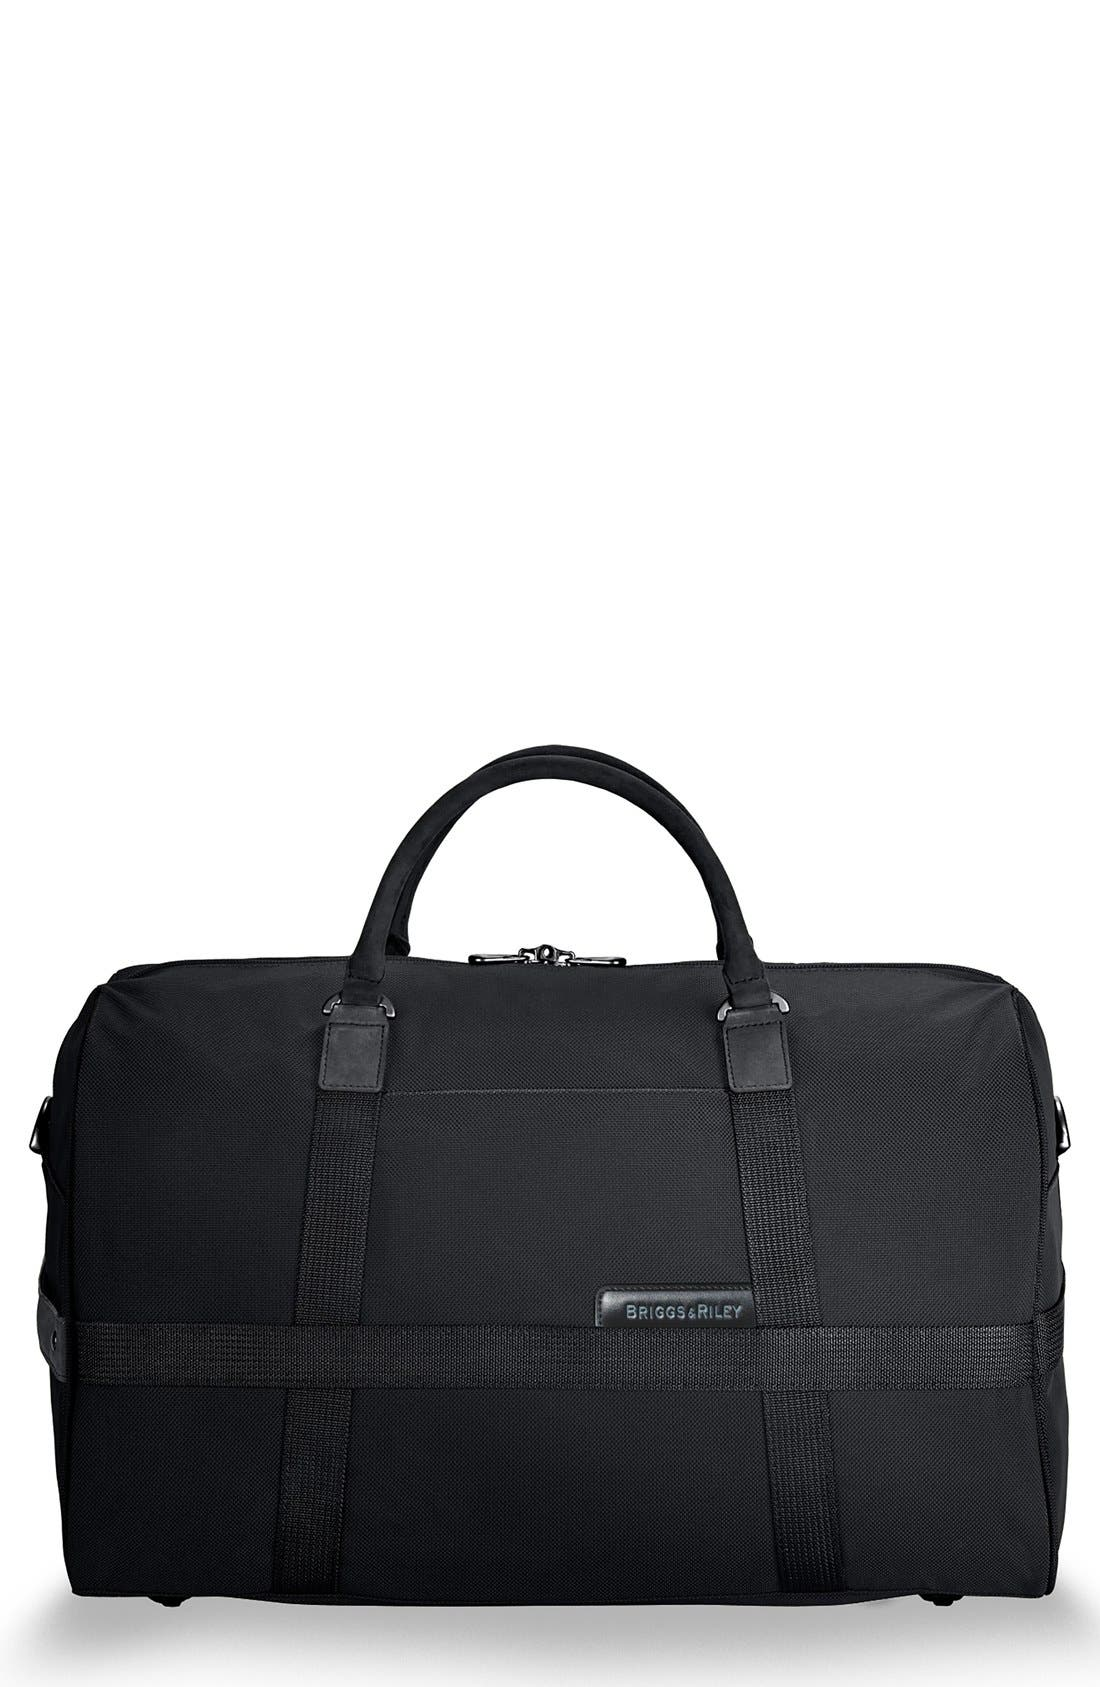 BRIGGS & RILEY Baseline - Medium Duffel Bag